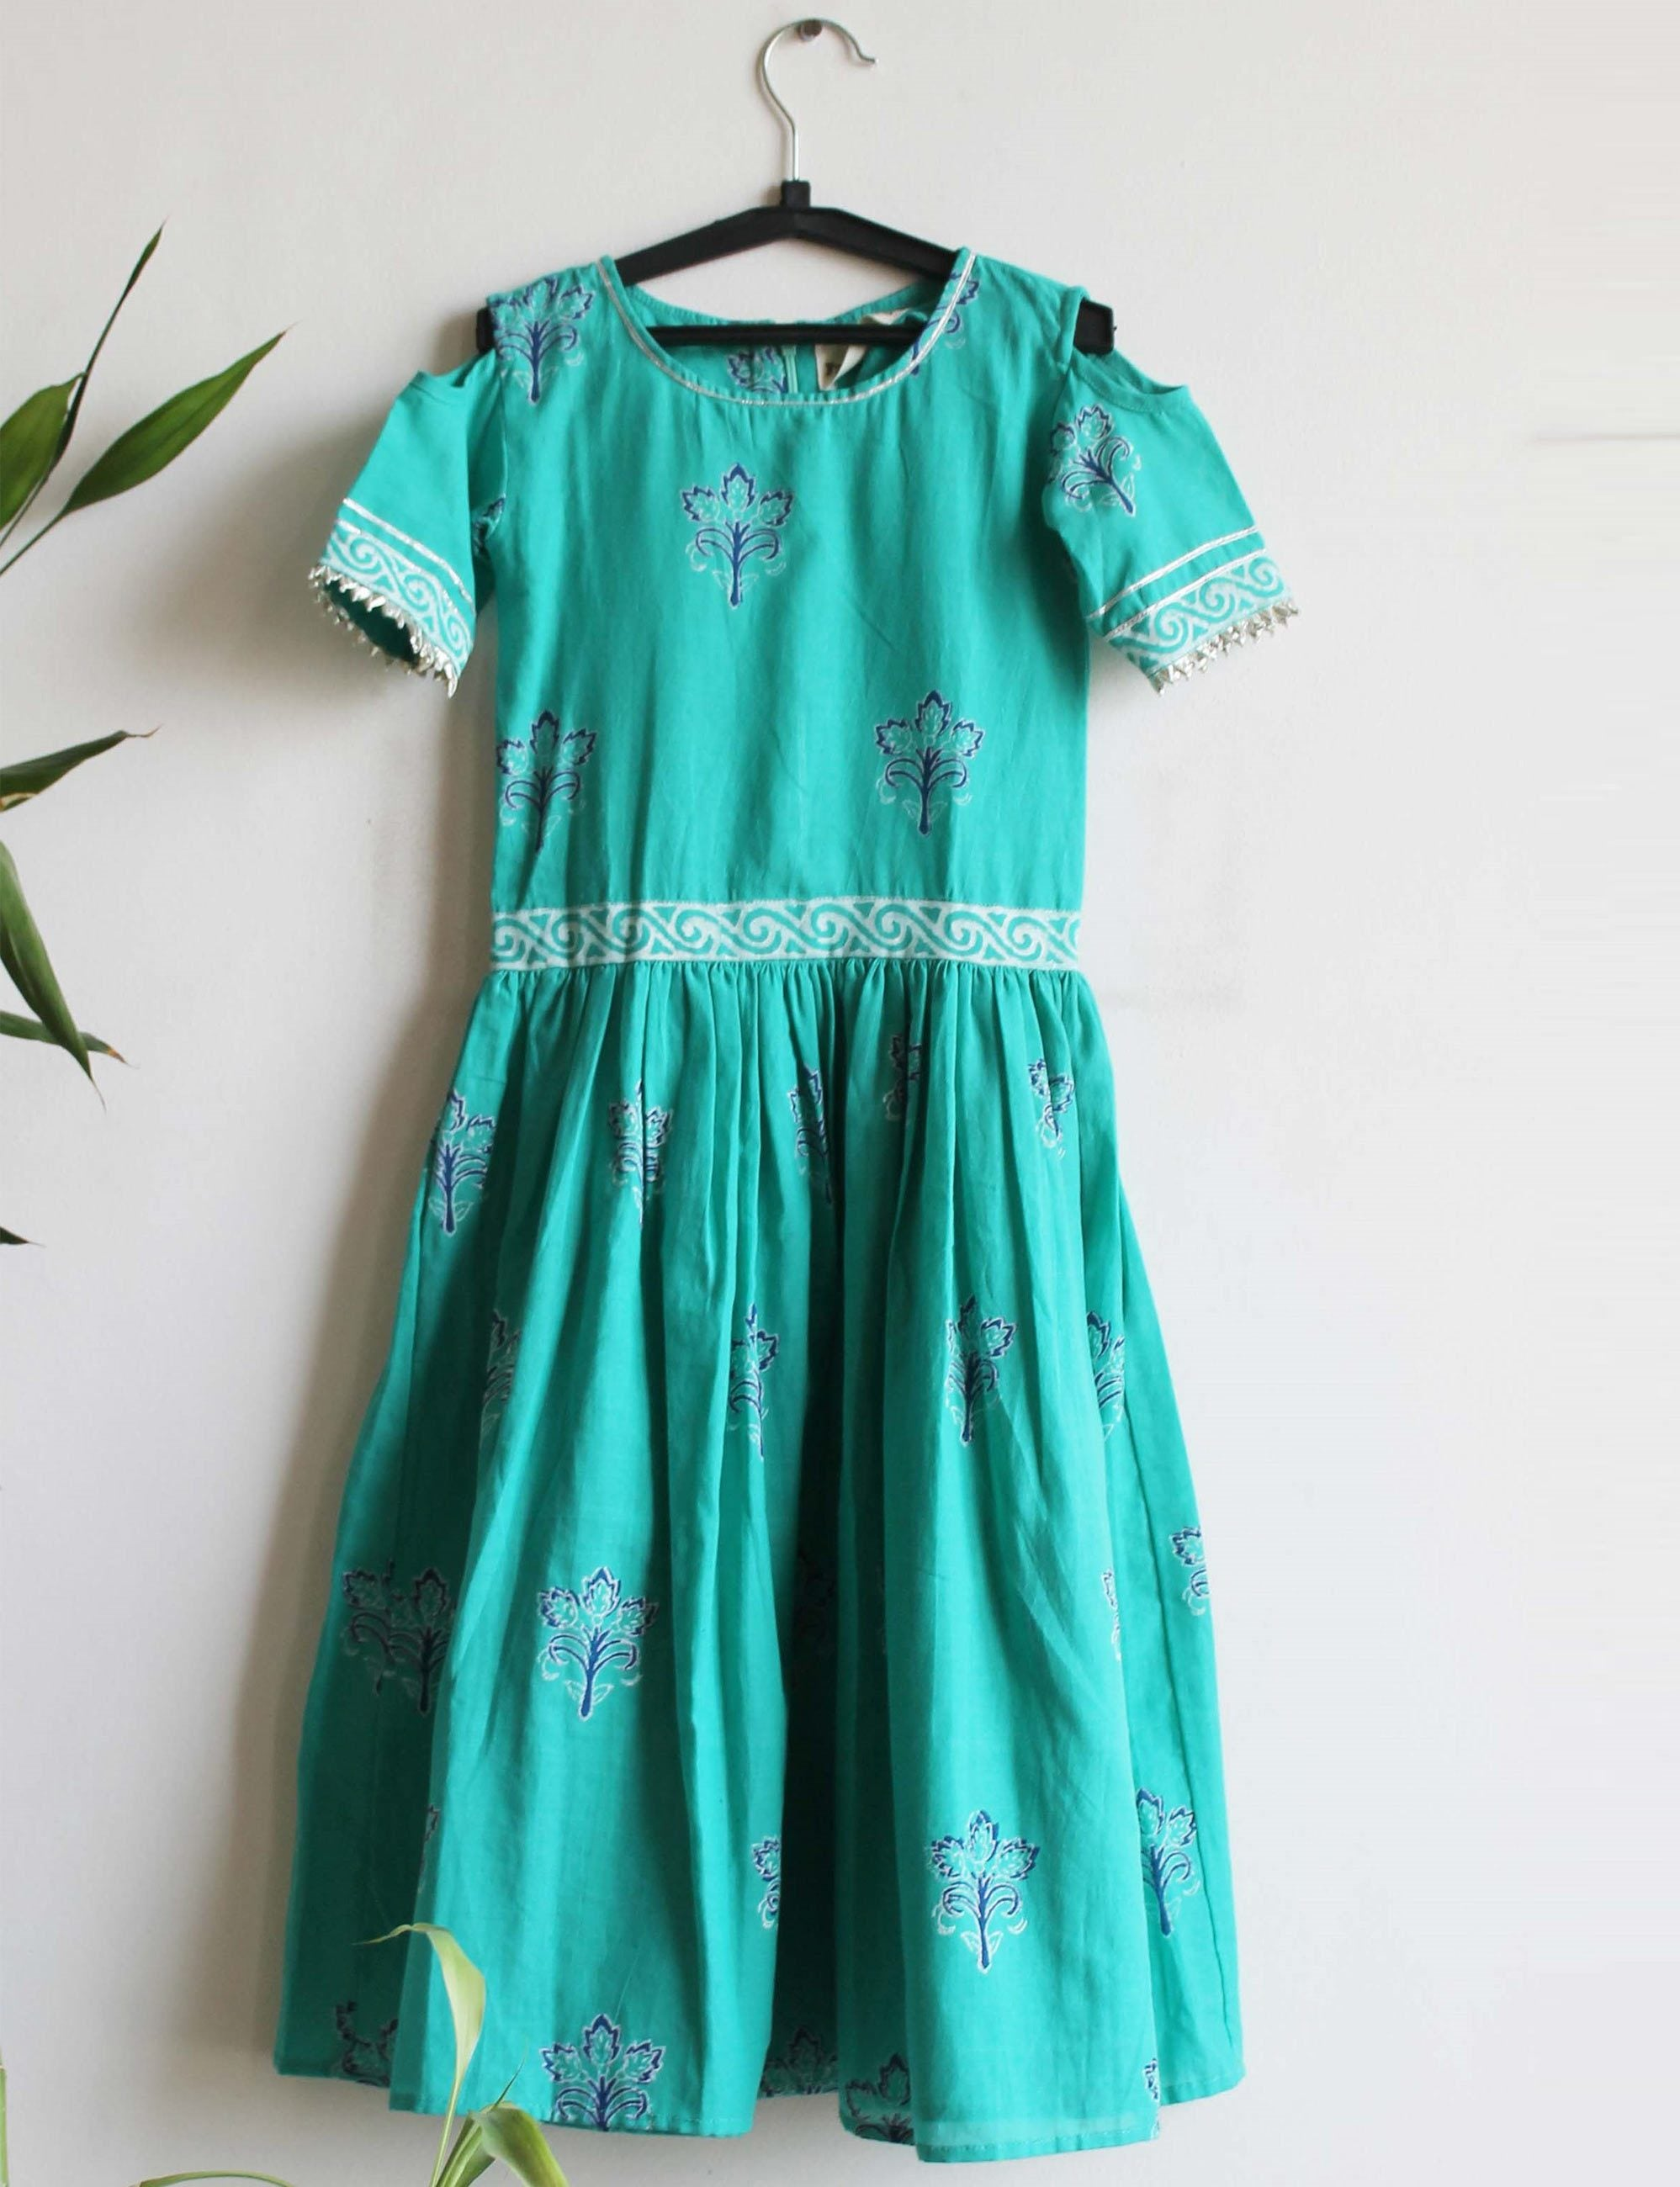 A Cold Shoulder Dress in Green Colour for Girls